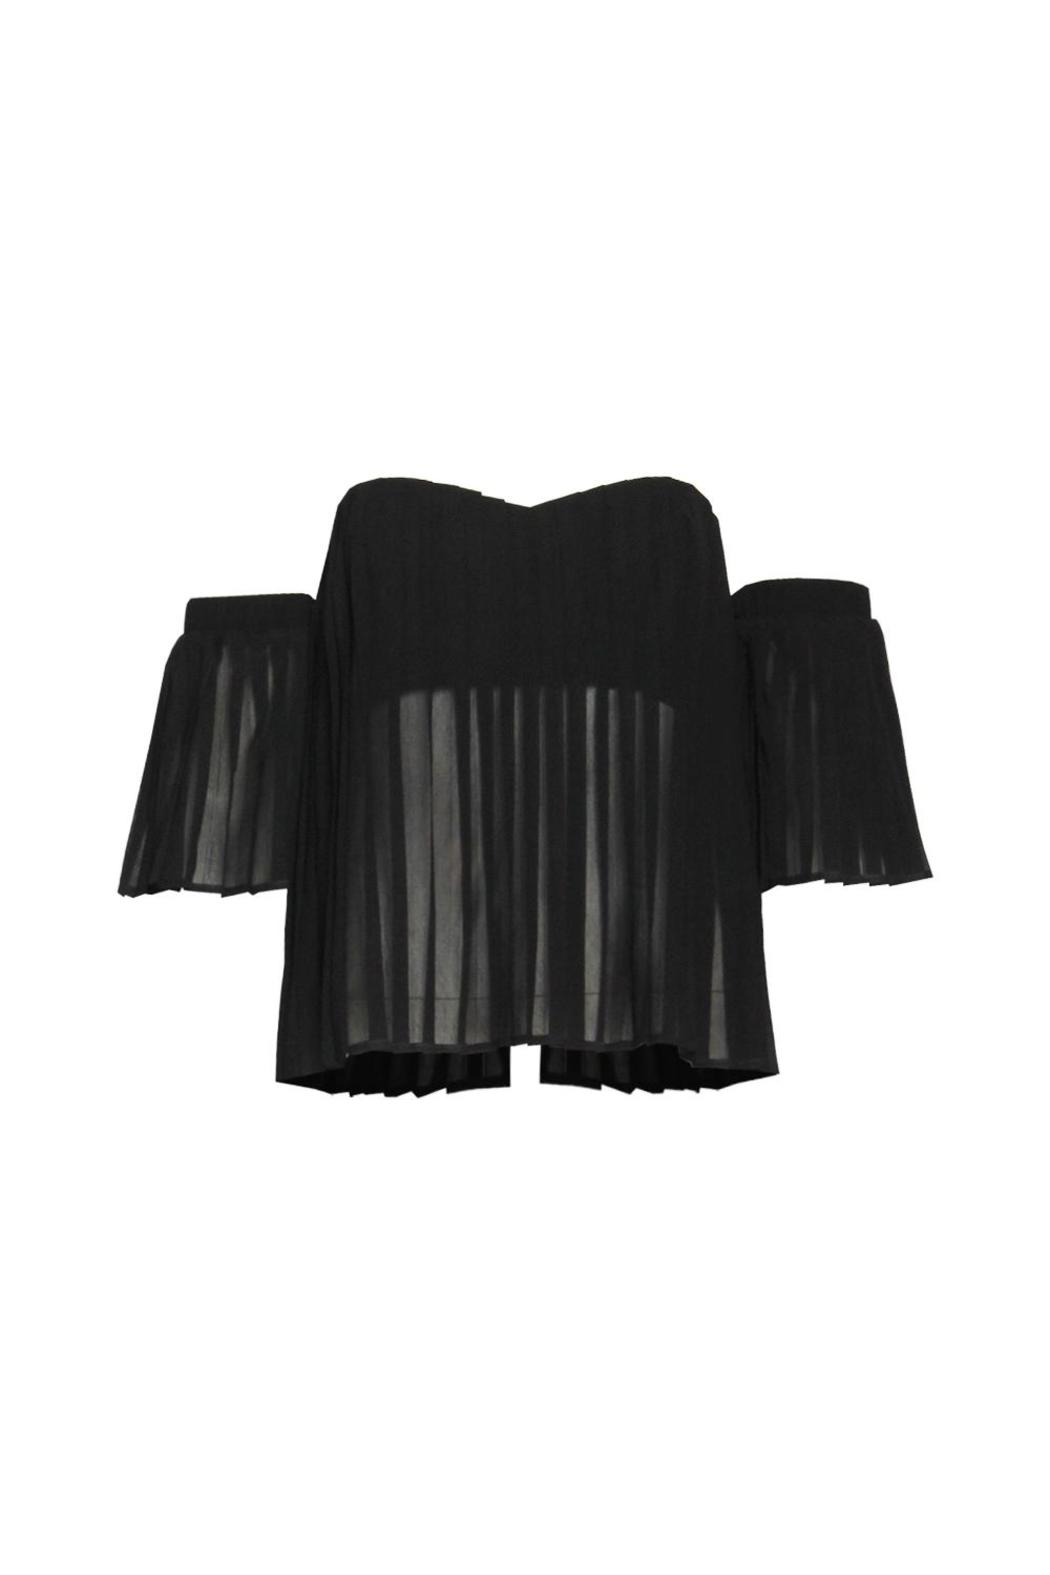 Renamed Apparel Pleated Off-Shoulder Top - Main Image